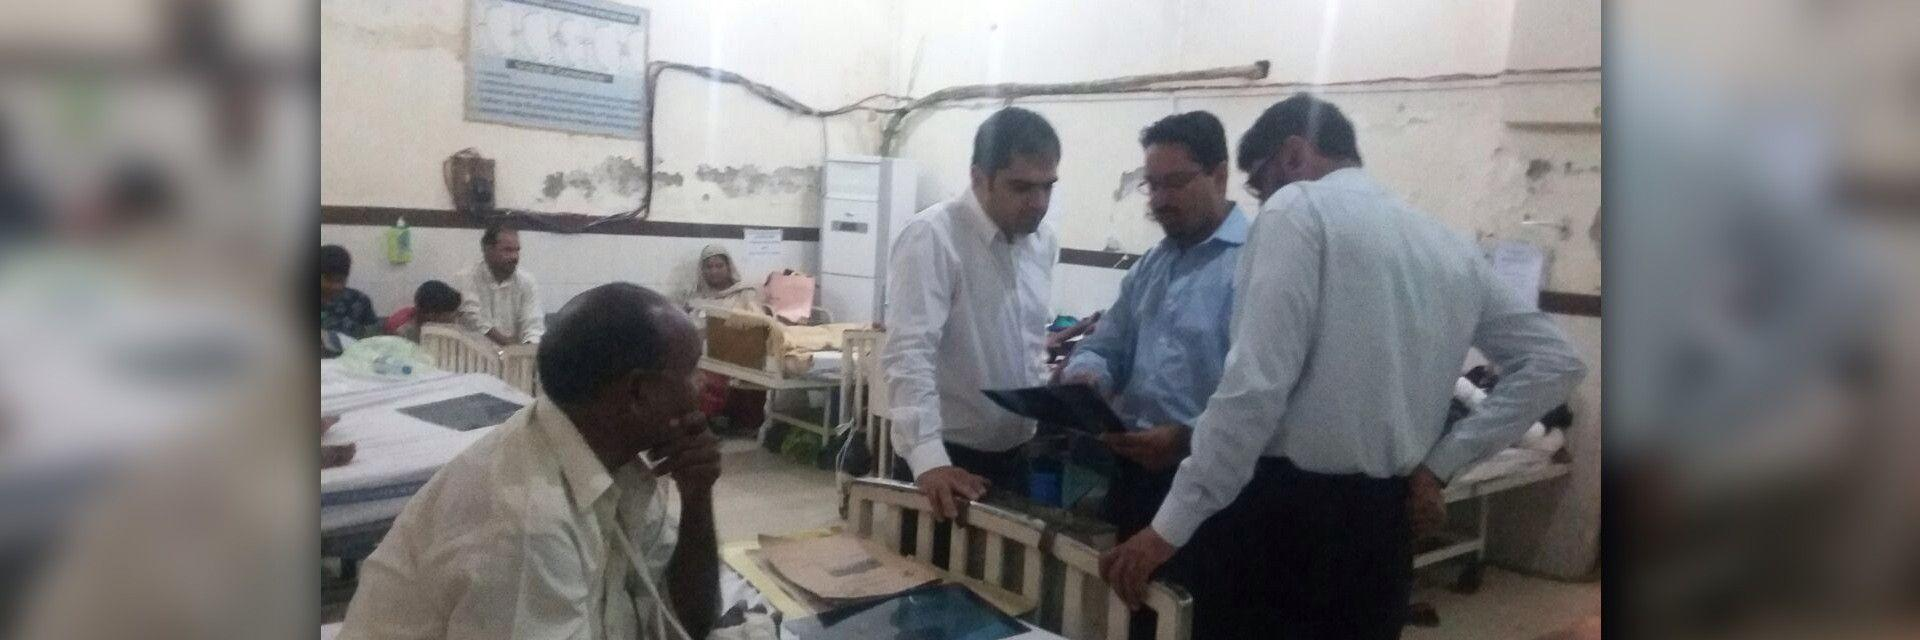 Helping Hand - Dr. Ilyas's Visit to Pakistan